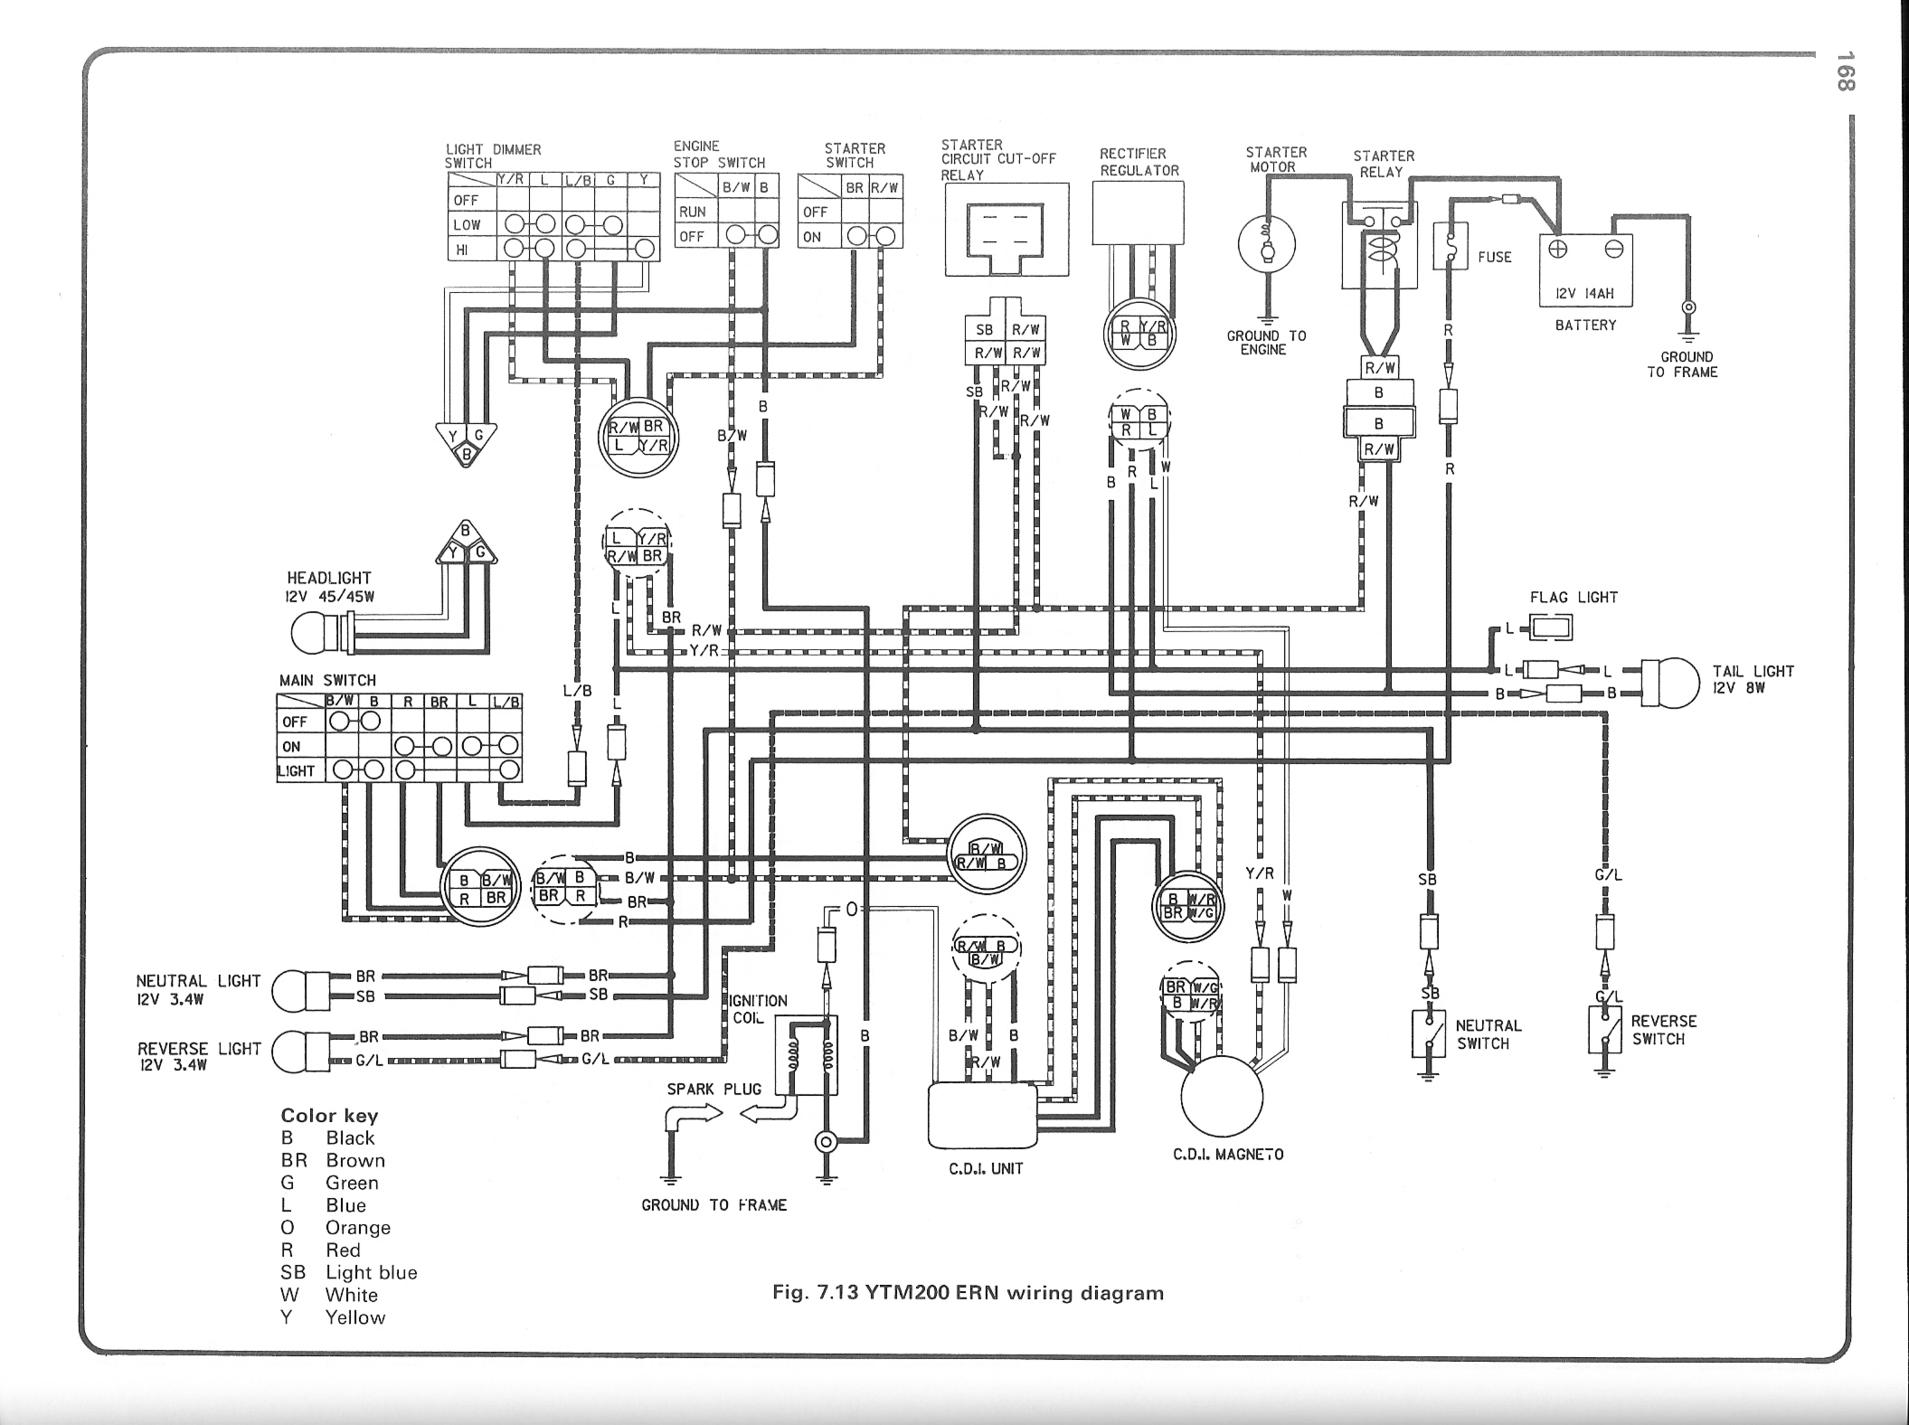 yamaha timberwolf 250 wiring diagram    yamaha    kodiak 400    wiring       diagram    auto electrical    wiring        yamaha    kodiak 400    wiring       diagram    auto electrical    wiring